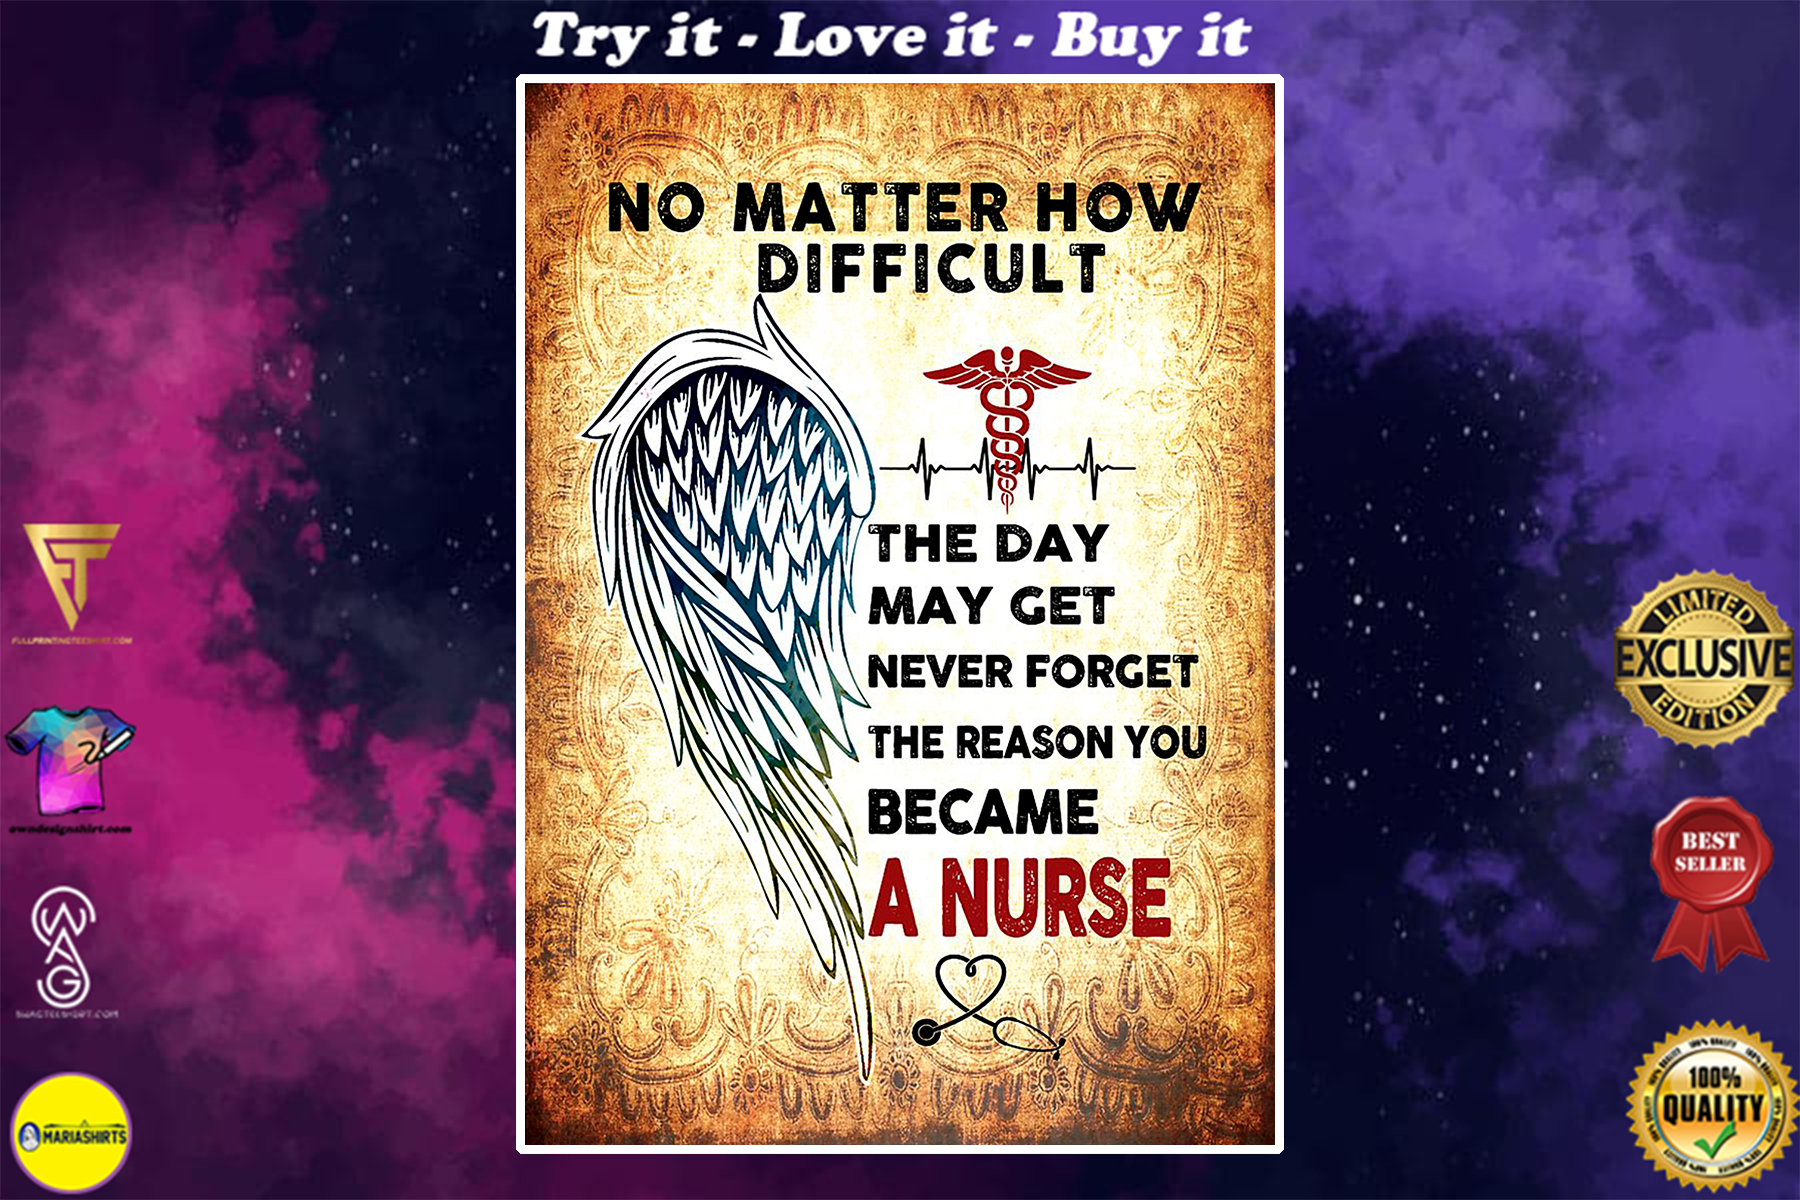 angels wings no matter how difficult the day may get never forget the reason you became a nurse poster